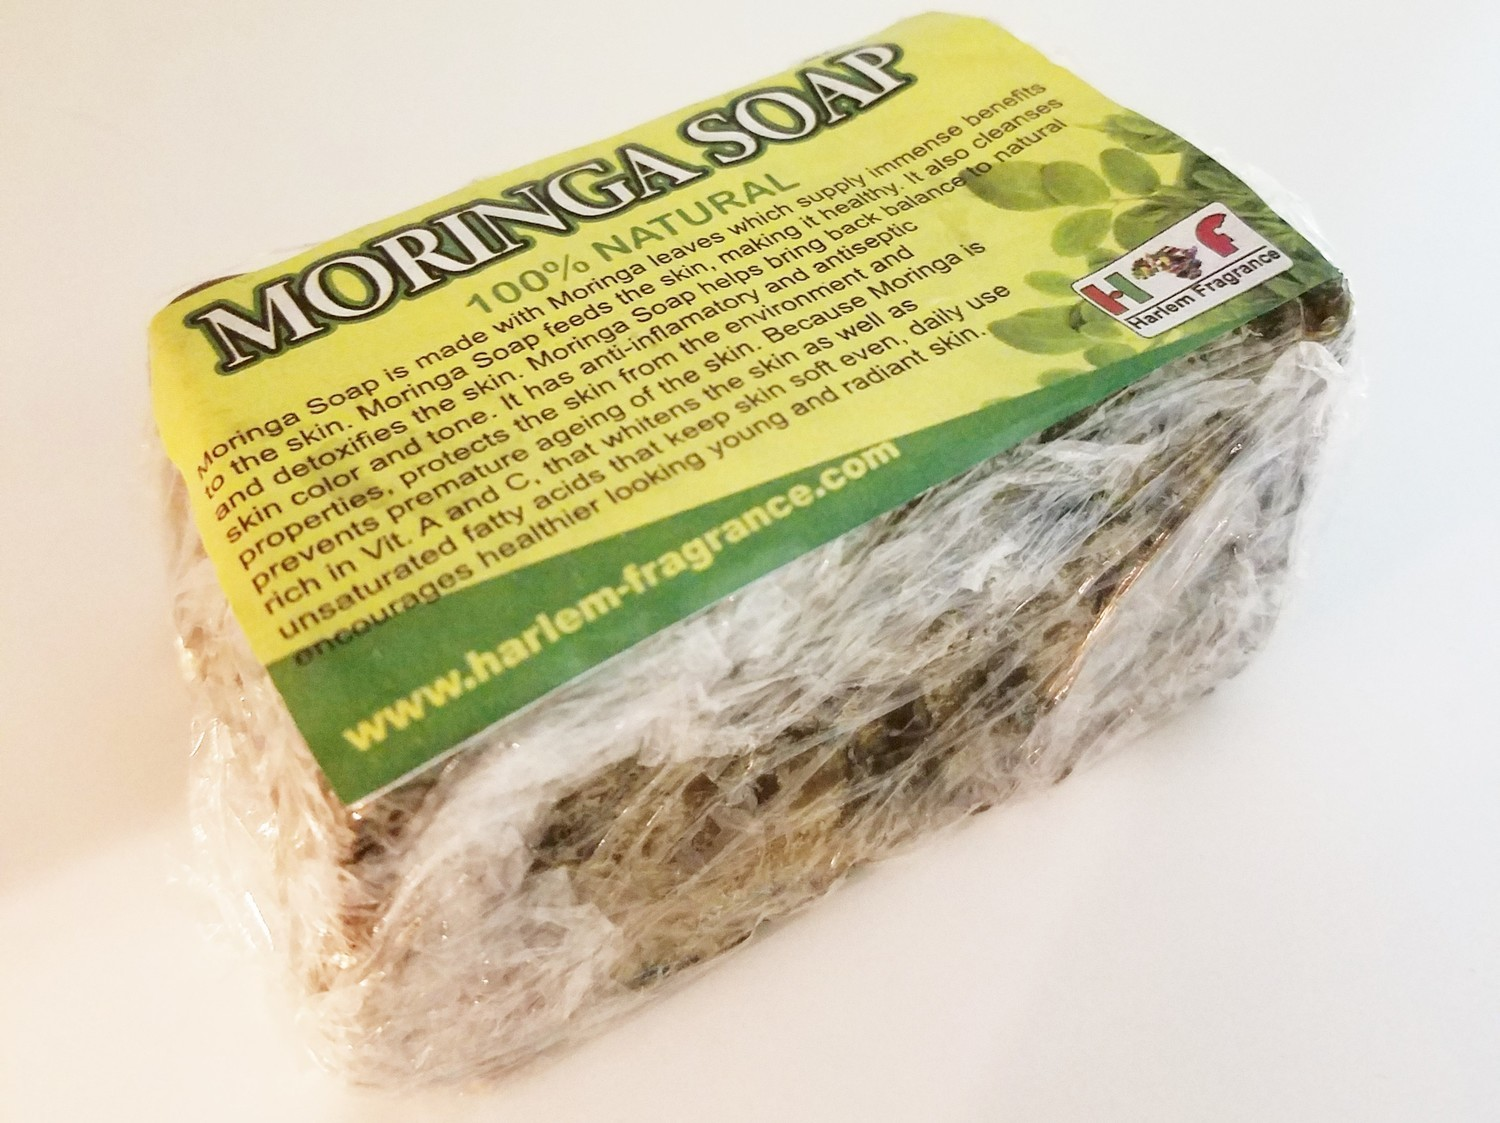 Moringa Soap 100% Natural